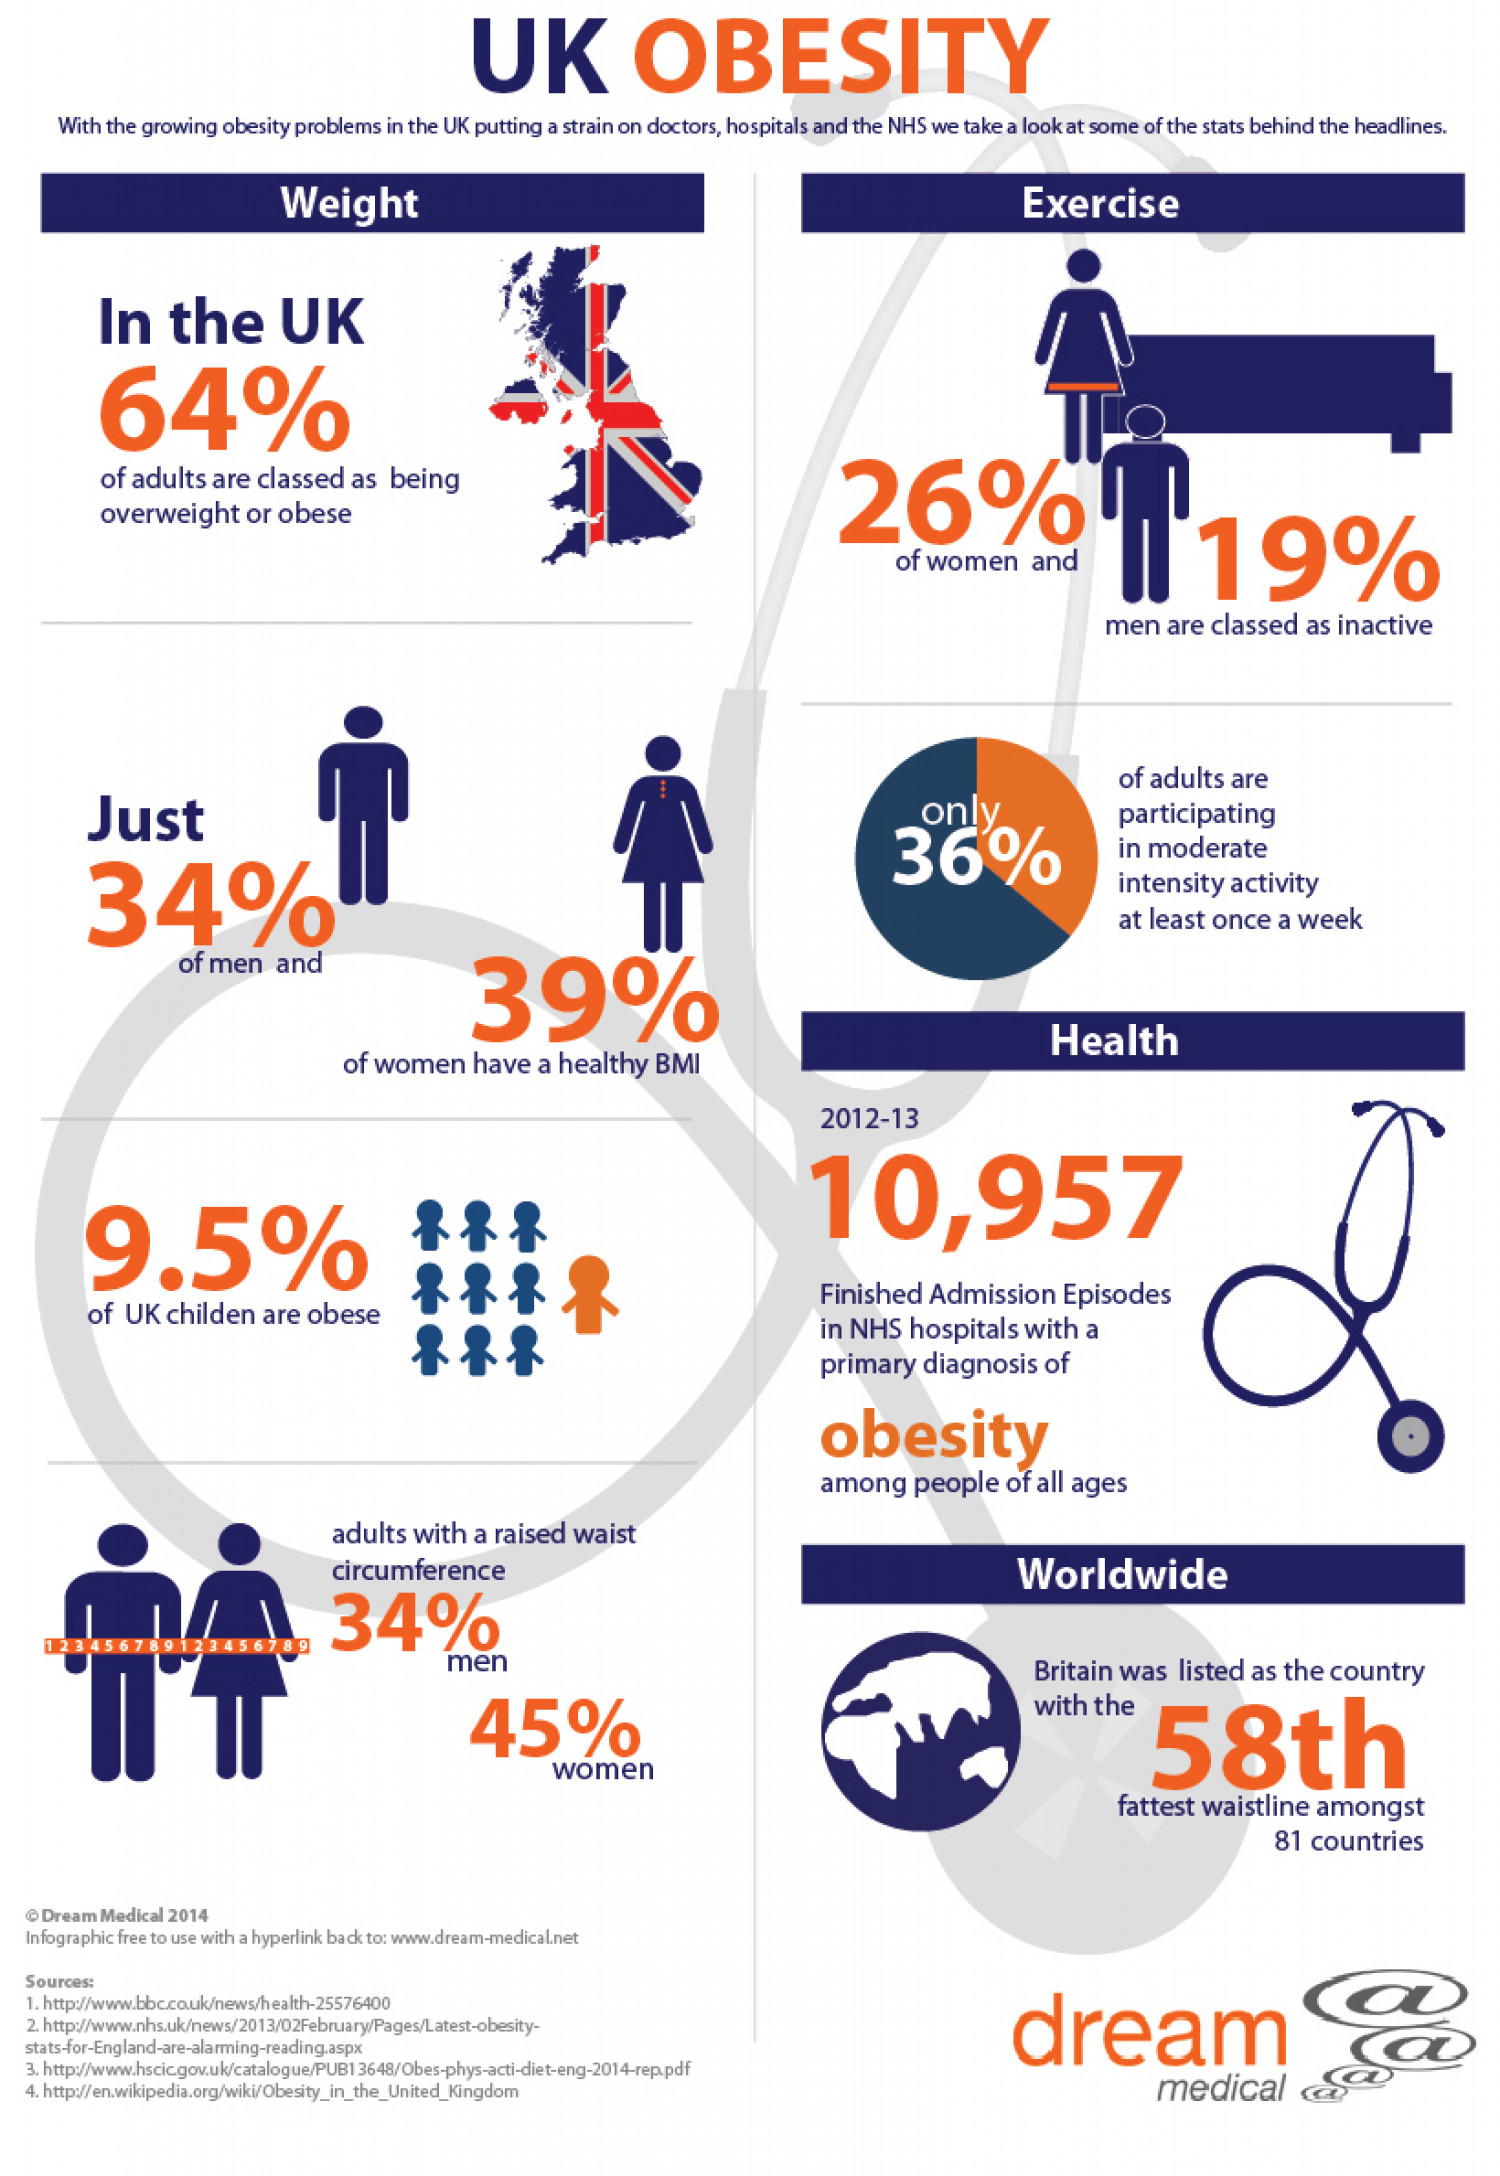 UK Obesity Infographic